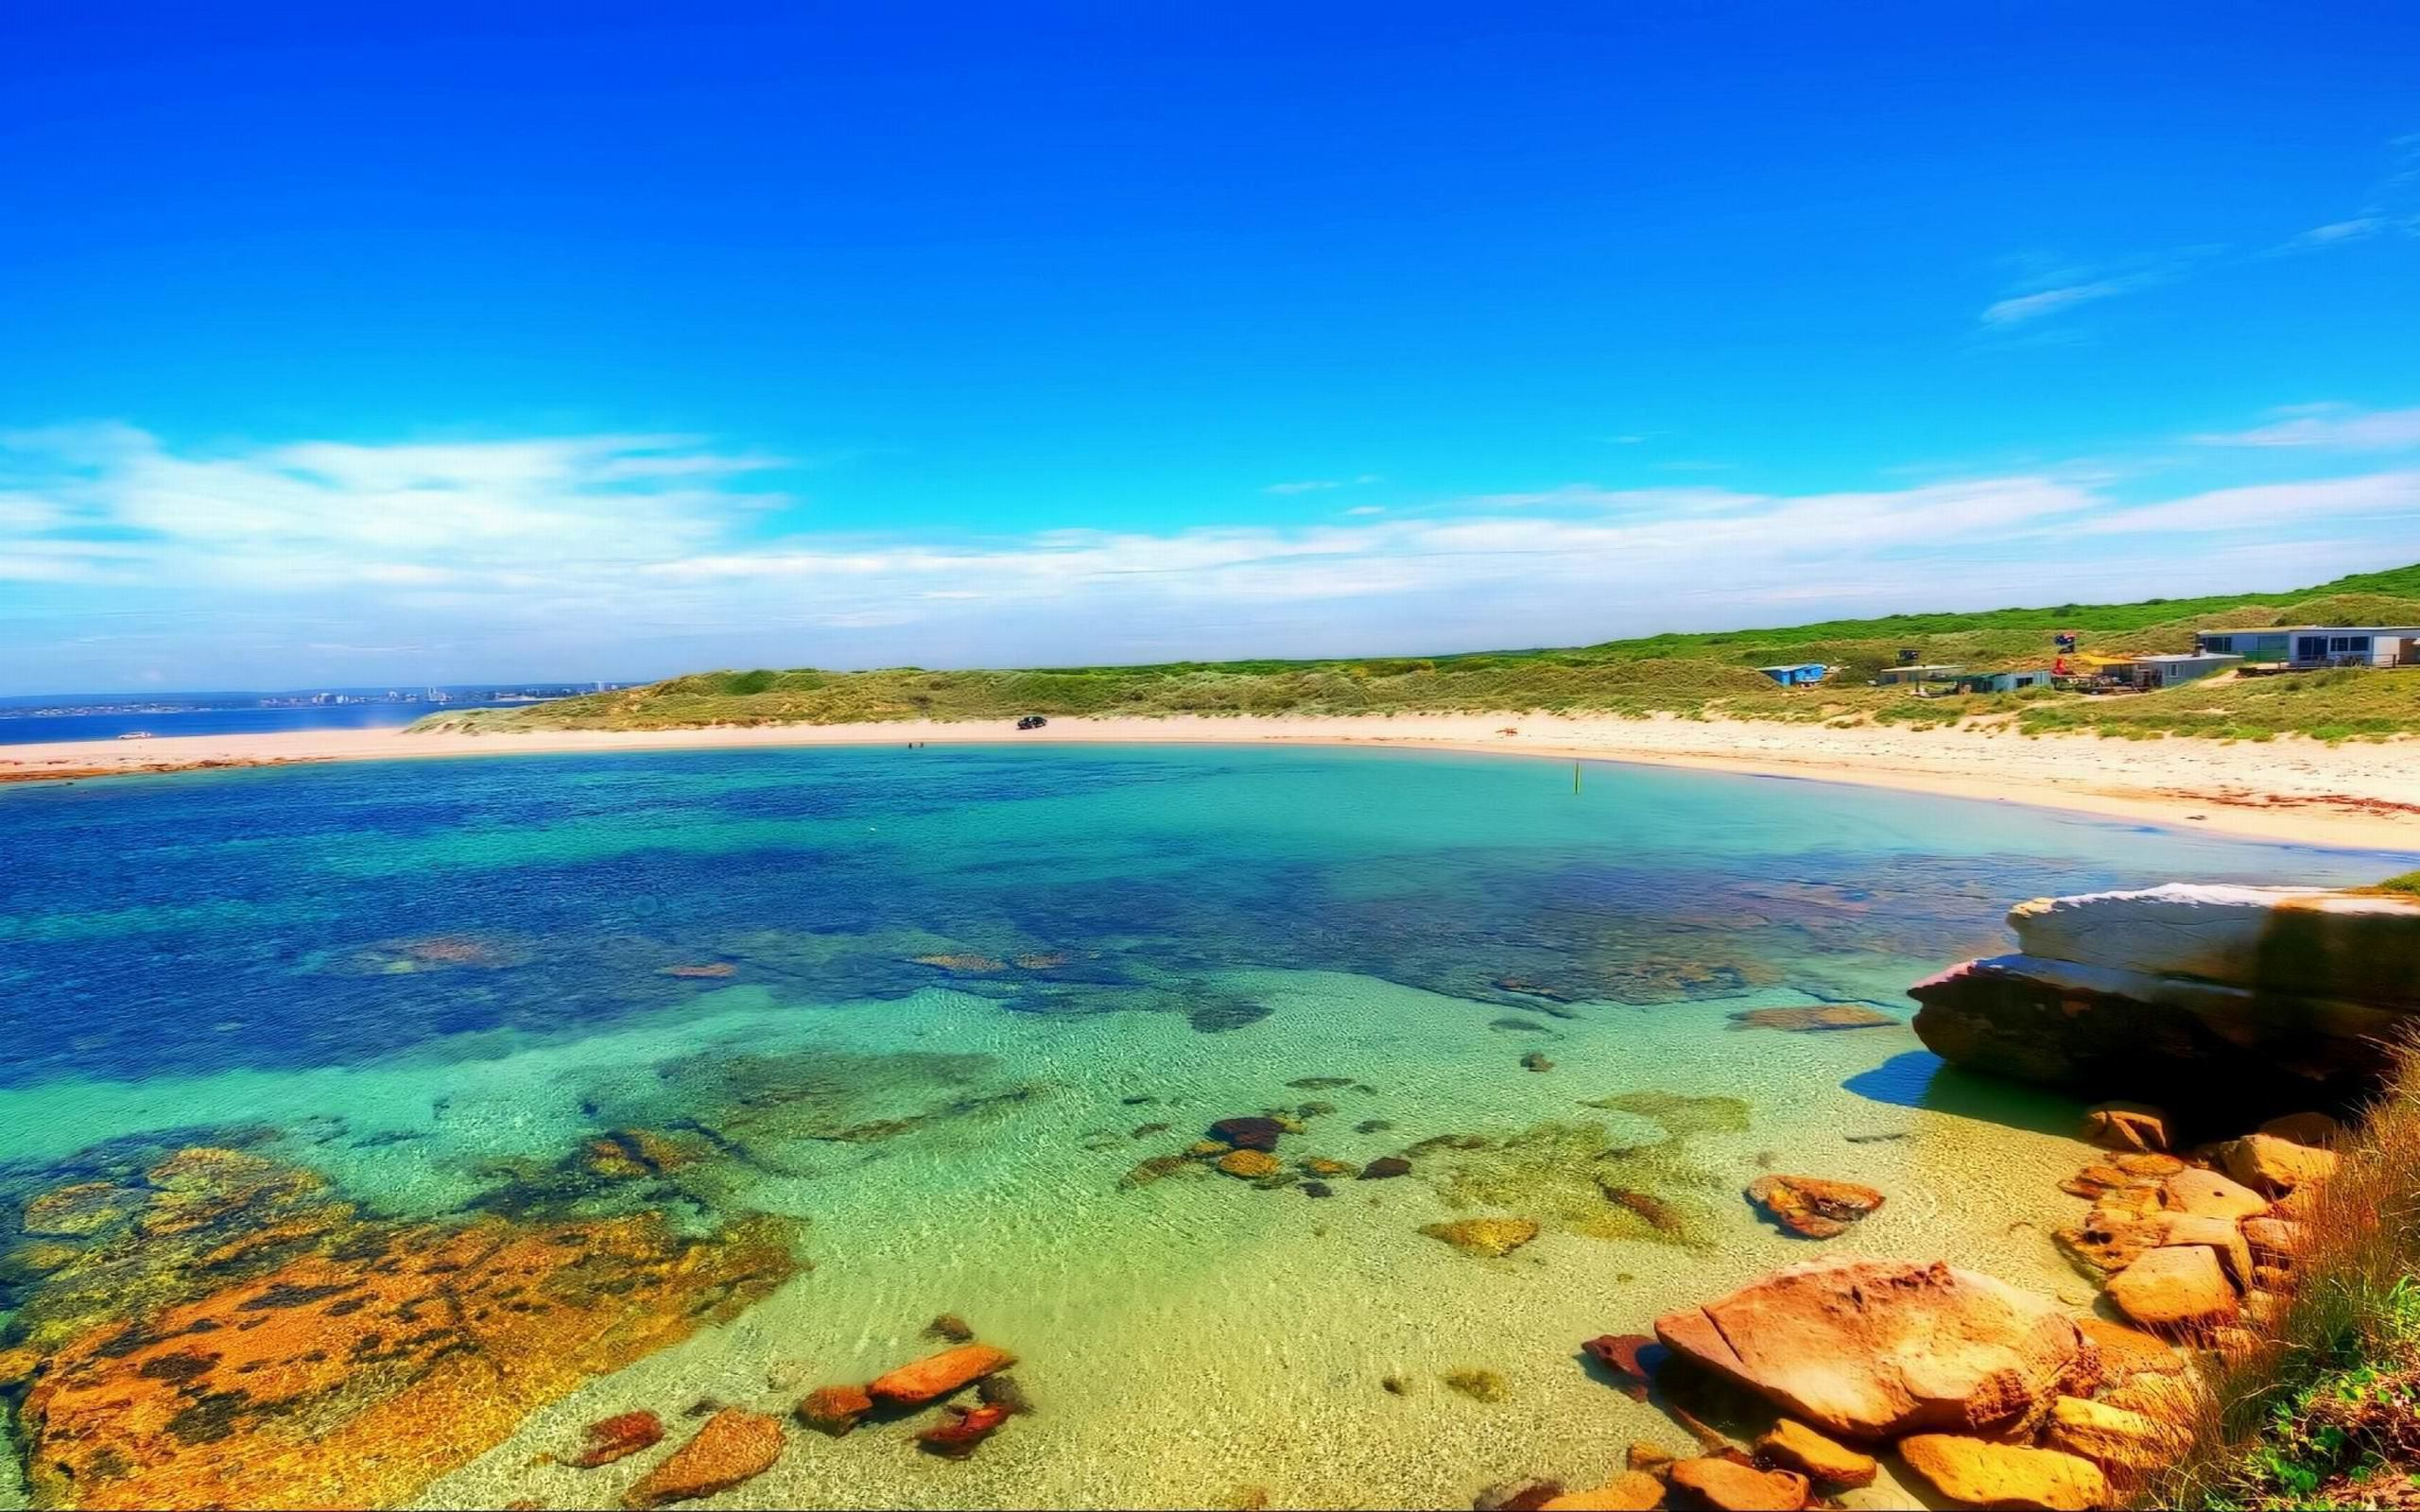 Australian Beach Background